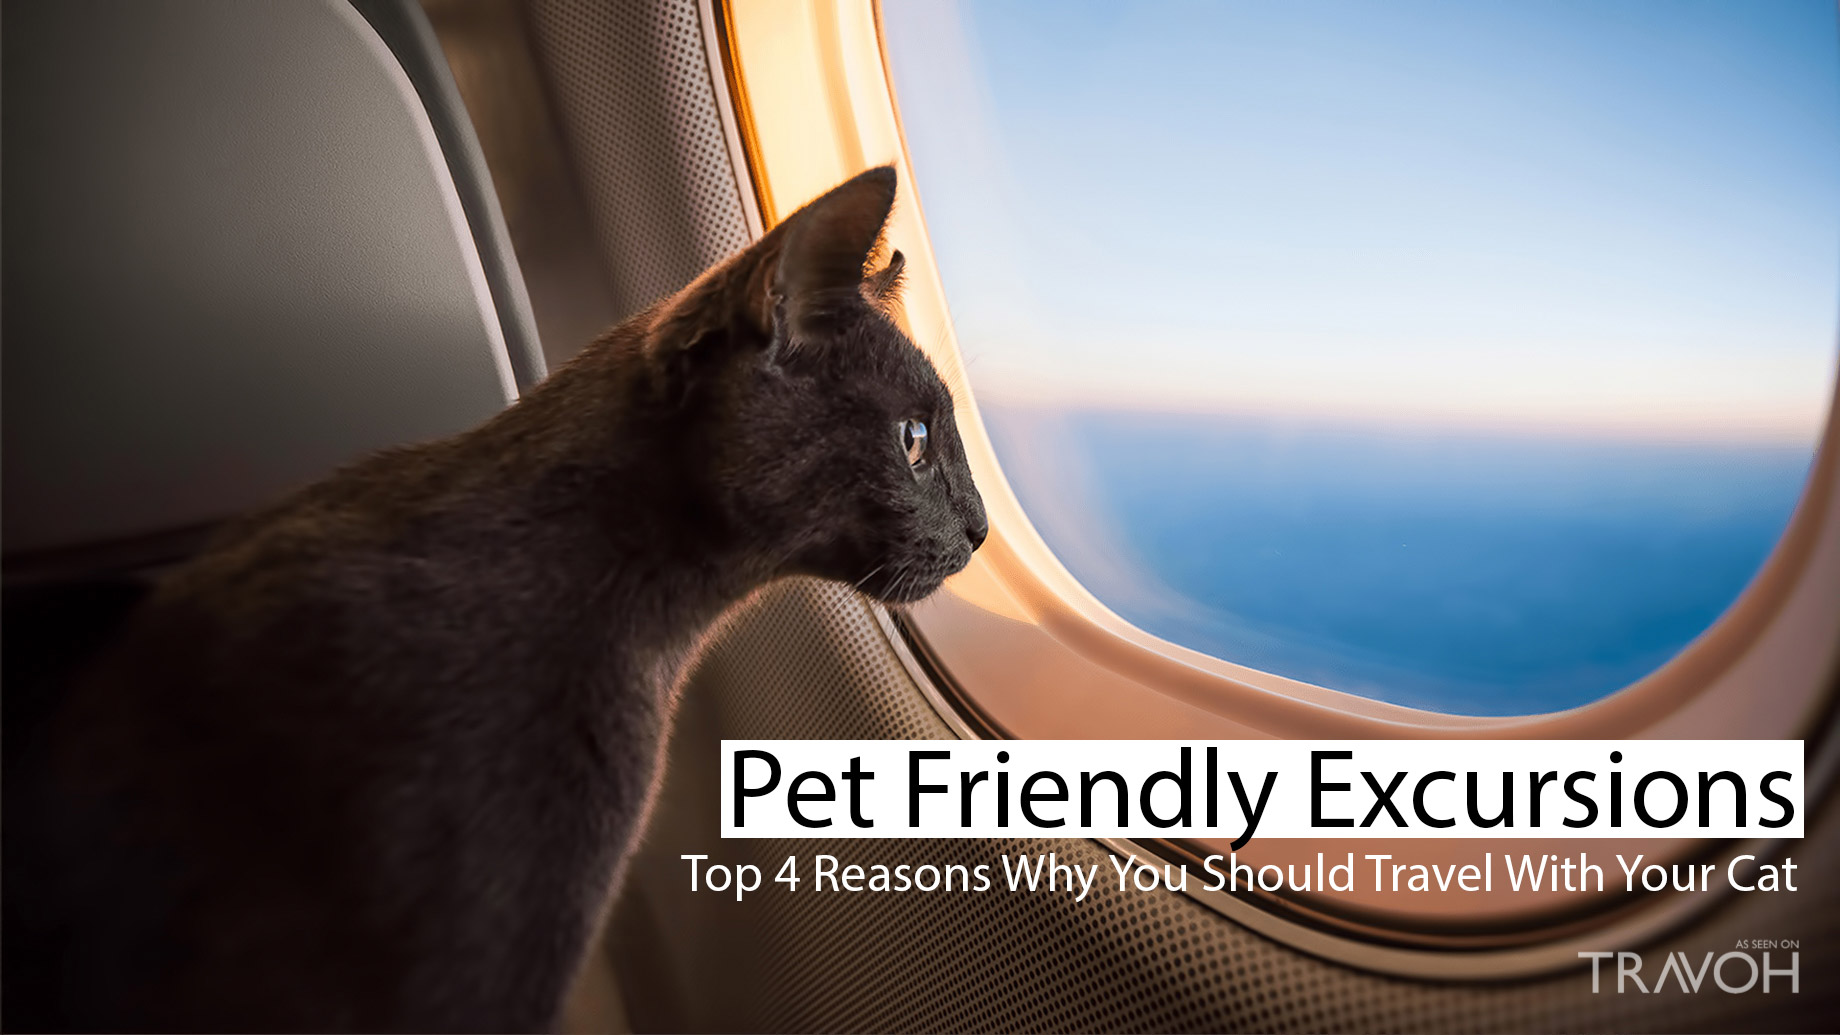 Pet-Friendly Excursions - Top 4 Reasons Why You Should Travel With Your Cat